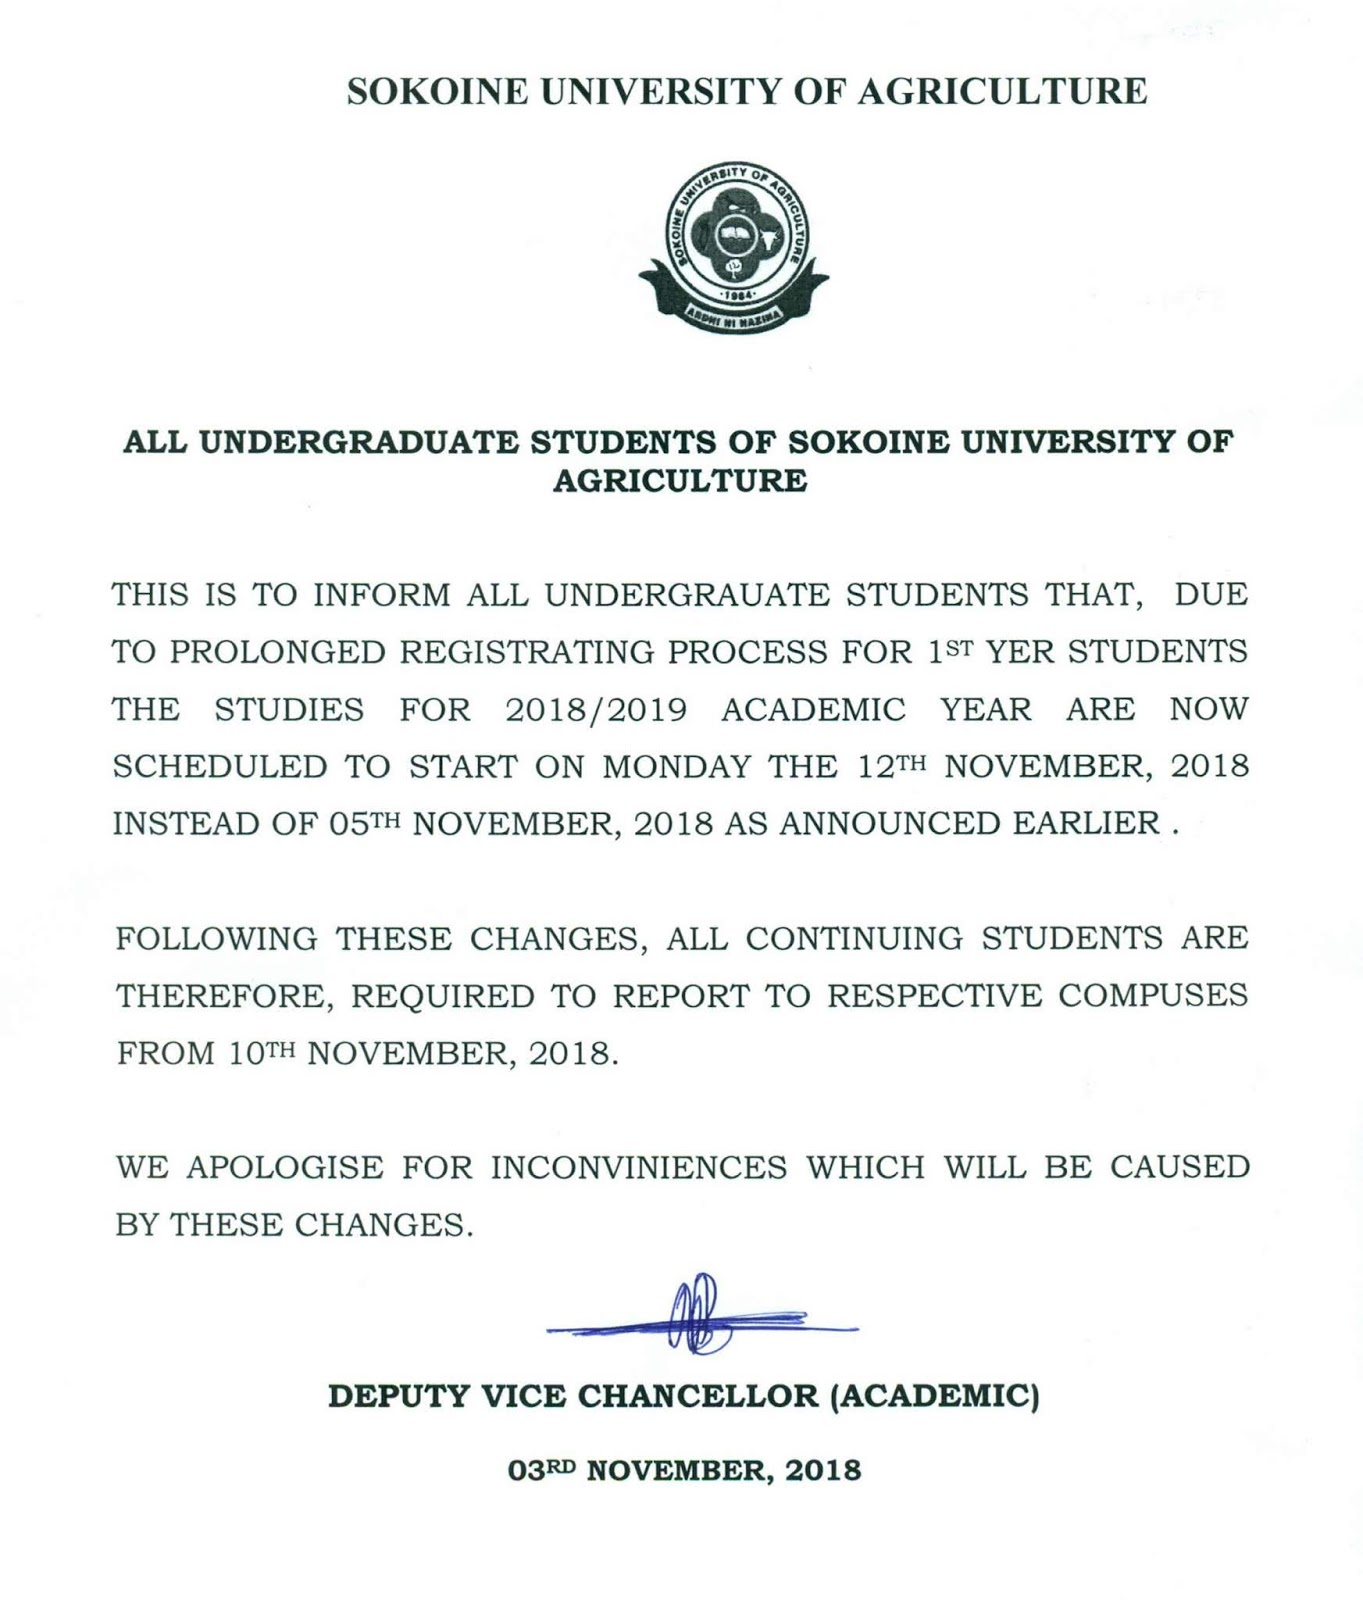 VERY IMPORTANT NOTICE TO ALL UNDERGRADUATE STUDENTS AT SOKOINE UNIVERSITY OF AGRICULTURE (SUA)